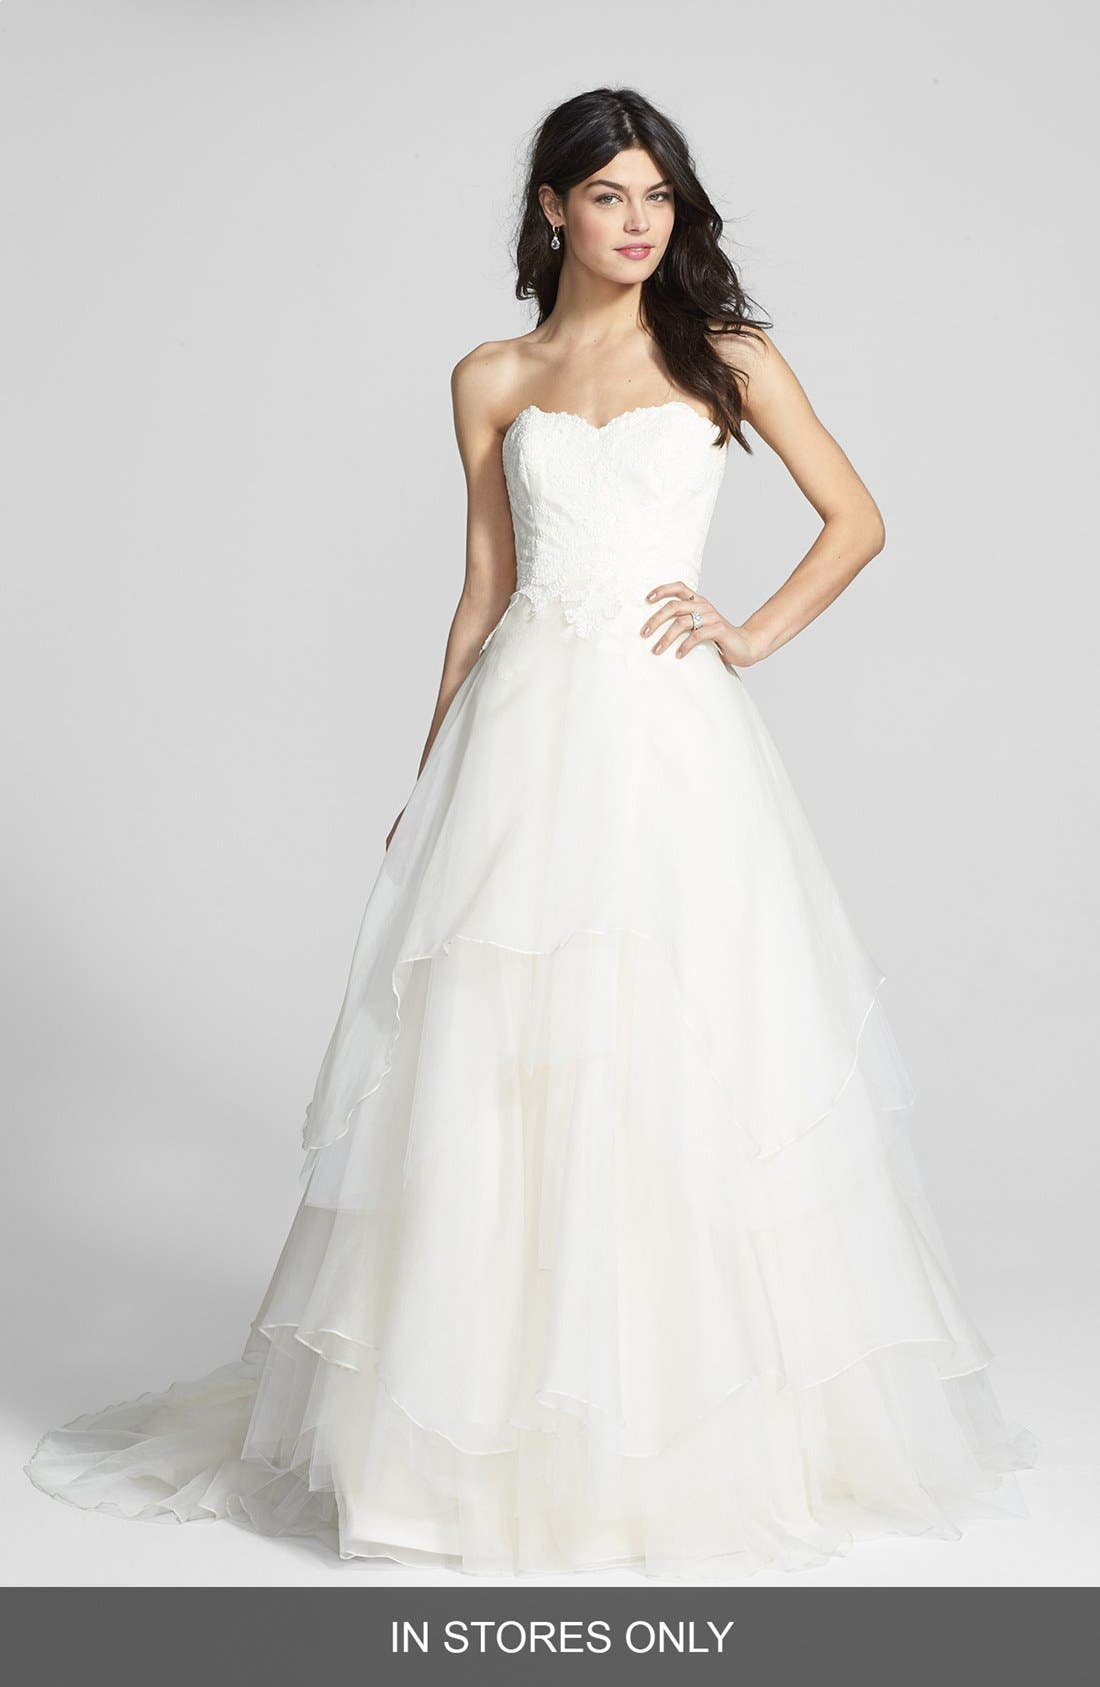 Alternate Image 1 Selected - Hayley Paige 'Mila' Strapless Silk Organza Wedding Dress (In Stores Only)